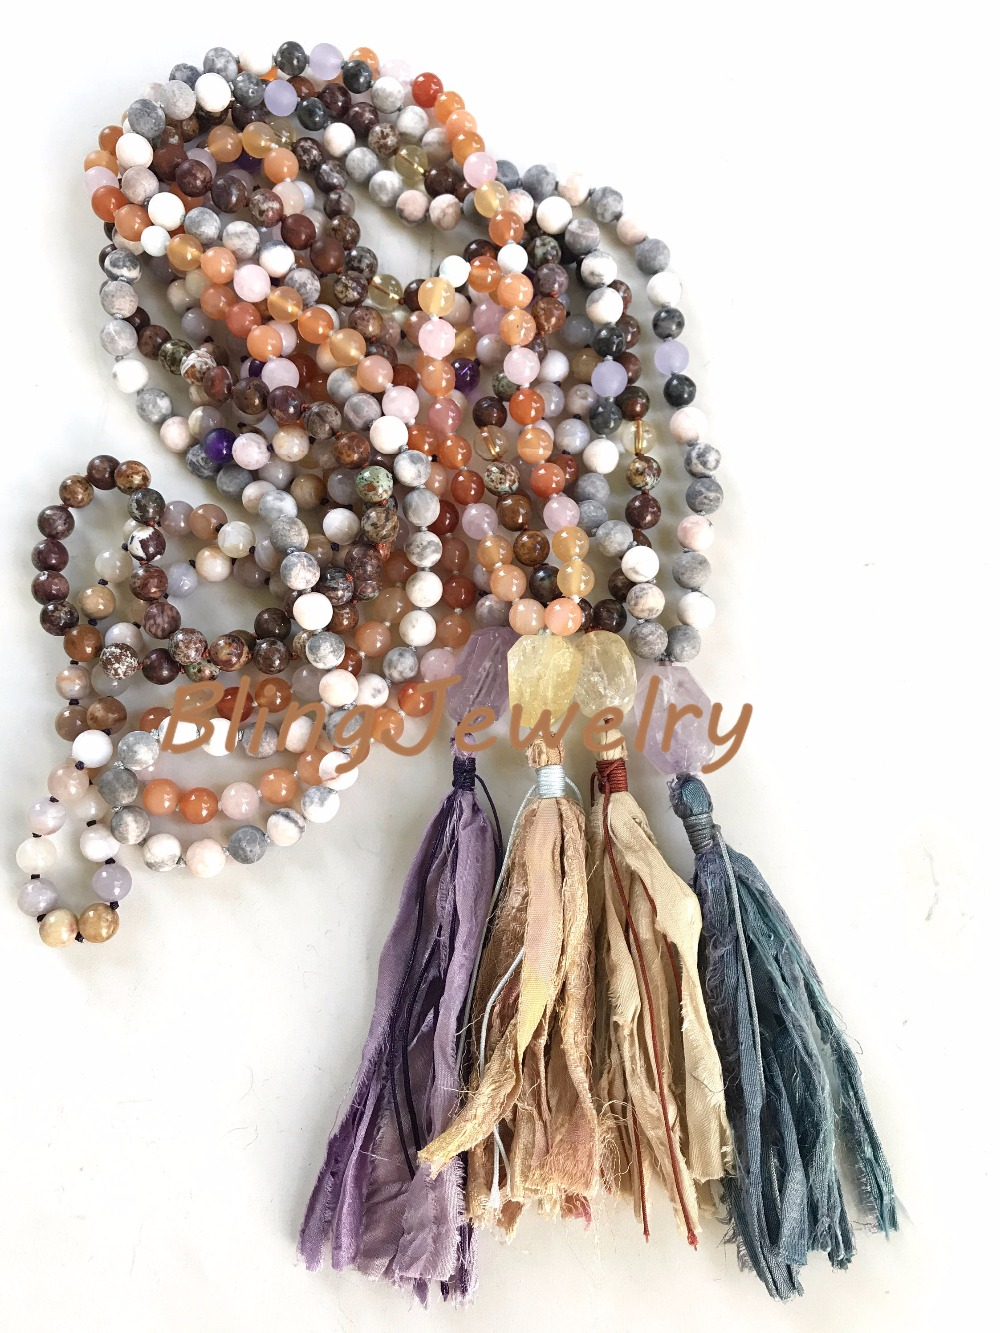 Knot Amethysts,Agates,African Opal or Pink Zebra Jaspers Necklace with Sari Silk Tassel N17082539 natural red coral with silk knot design necklace